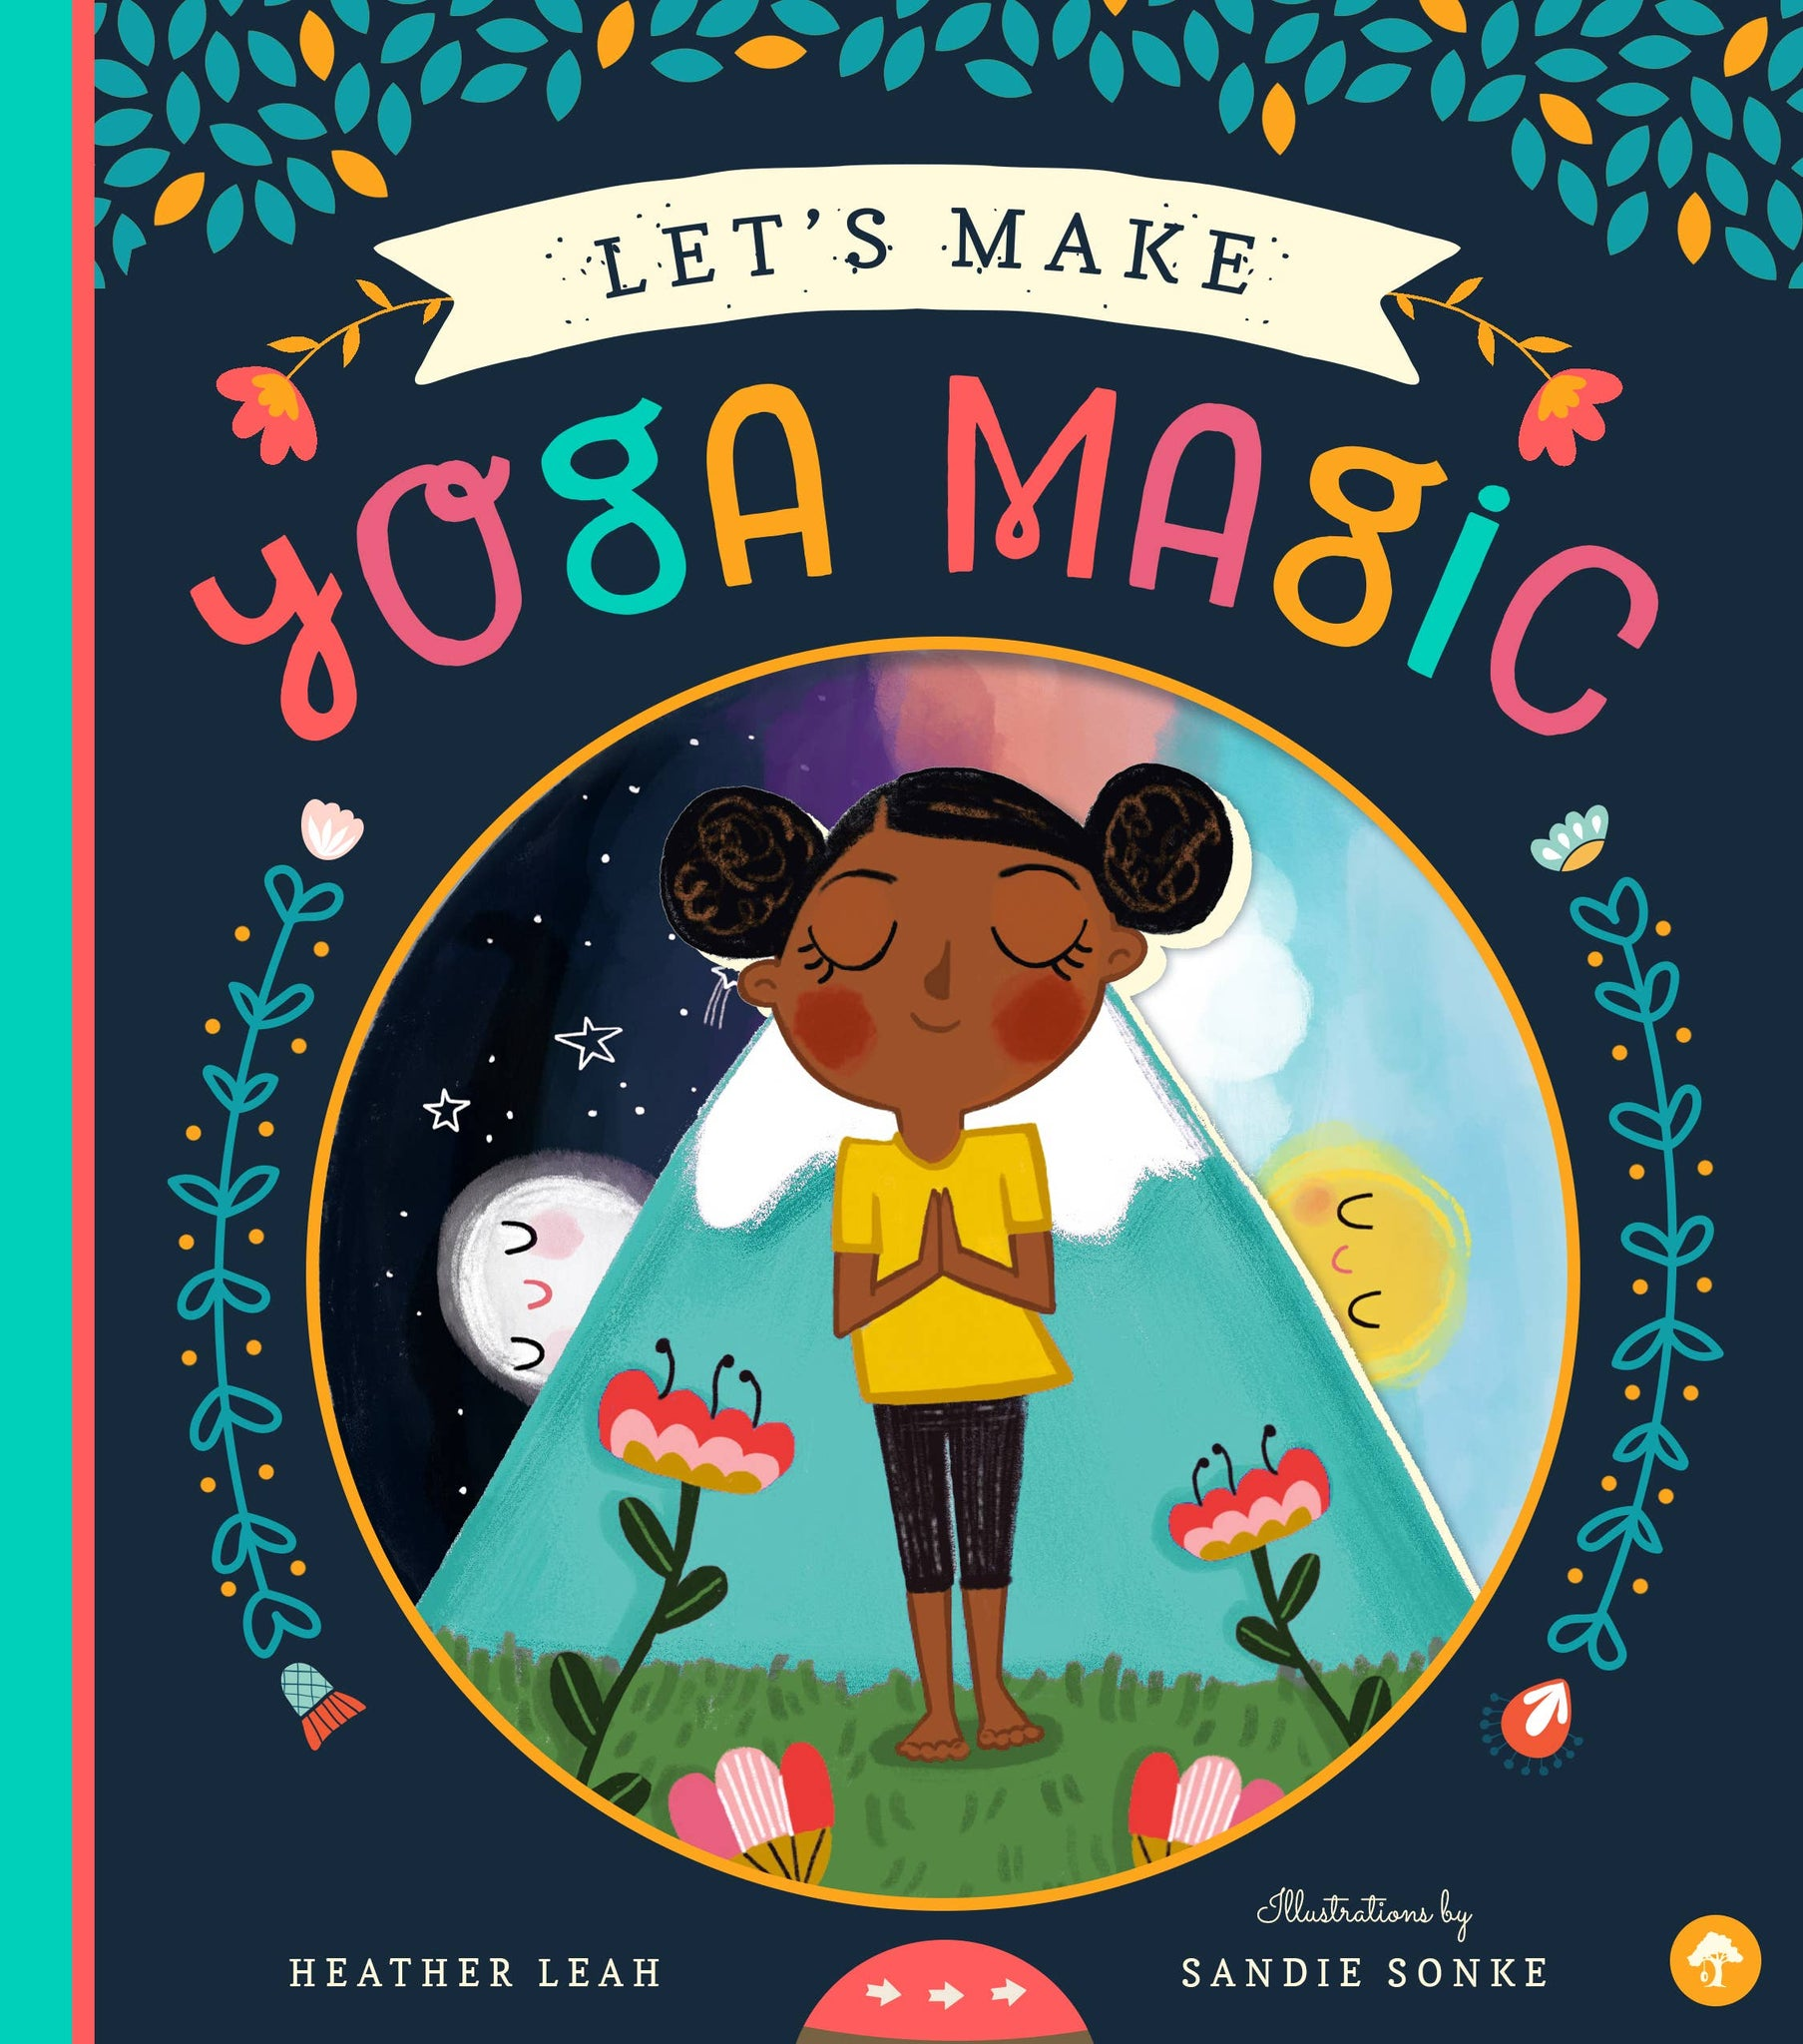 Let's Make Yoga Magic Board Book - Crunch Natural Parenting is where to buy